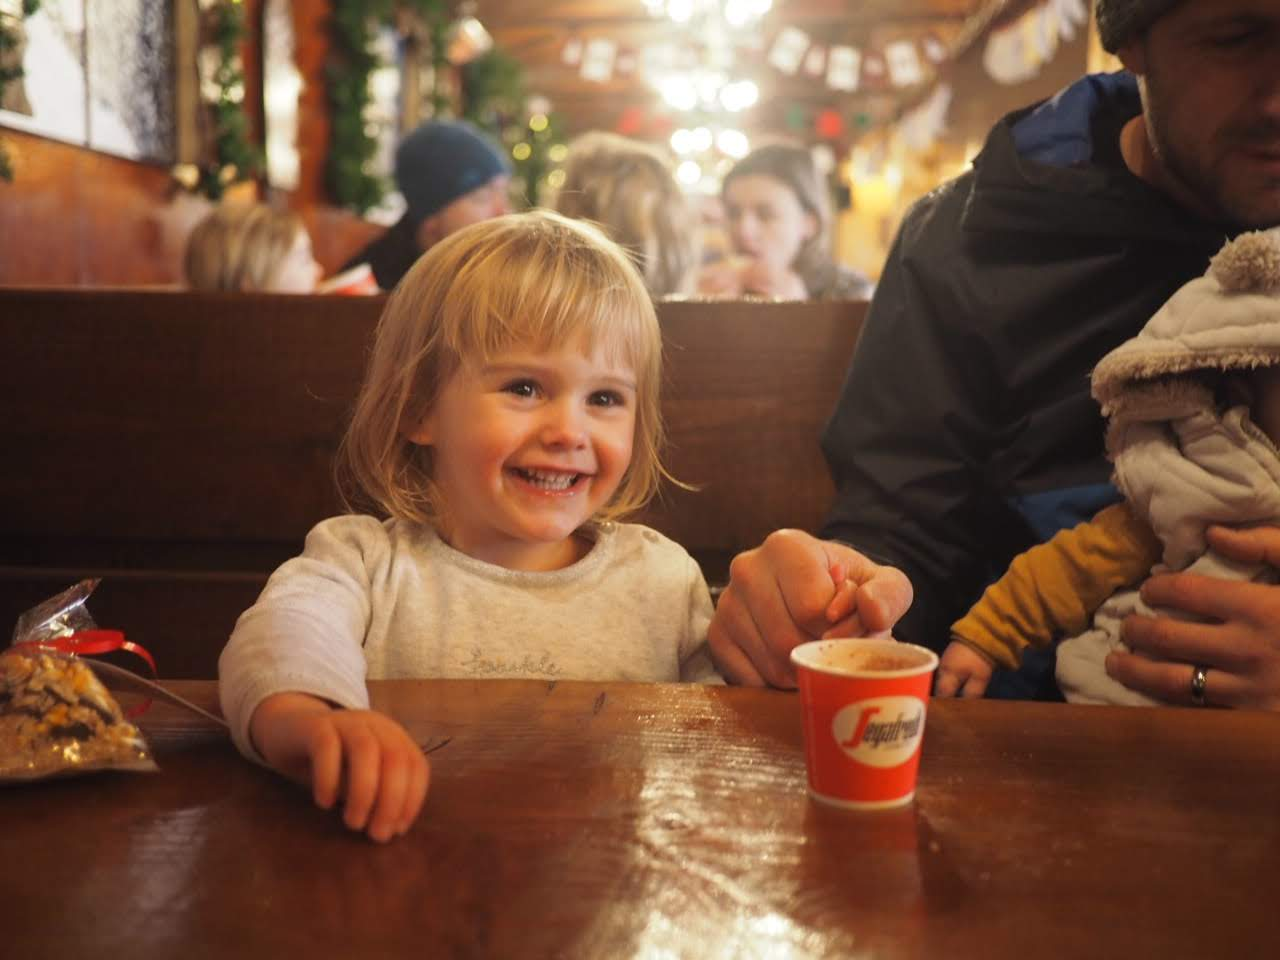 2 year old girl smiling with a mini hot chocolate at Tulleys Farm at Christmas